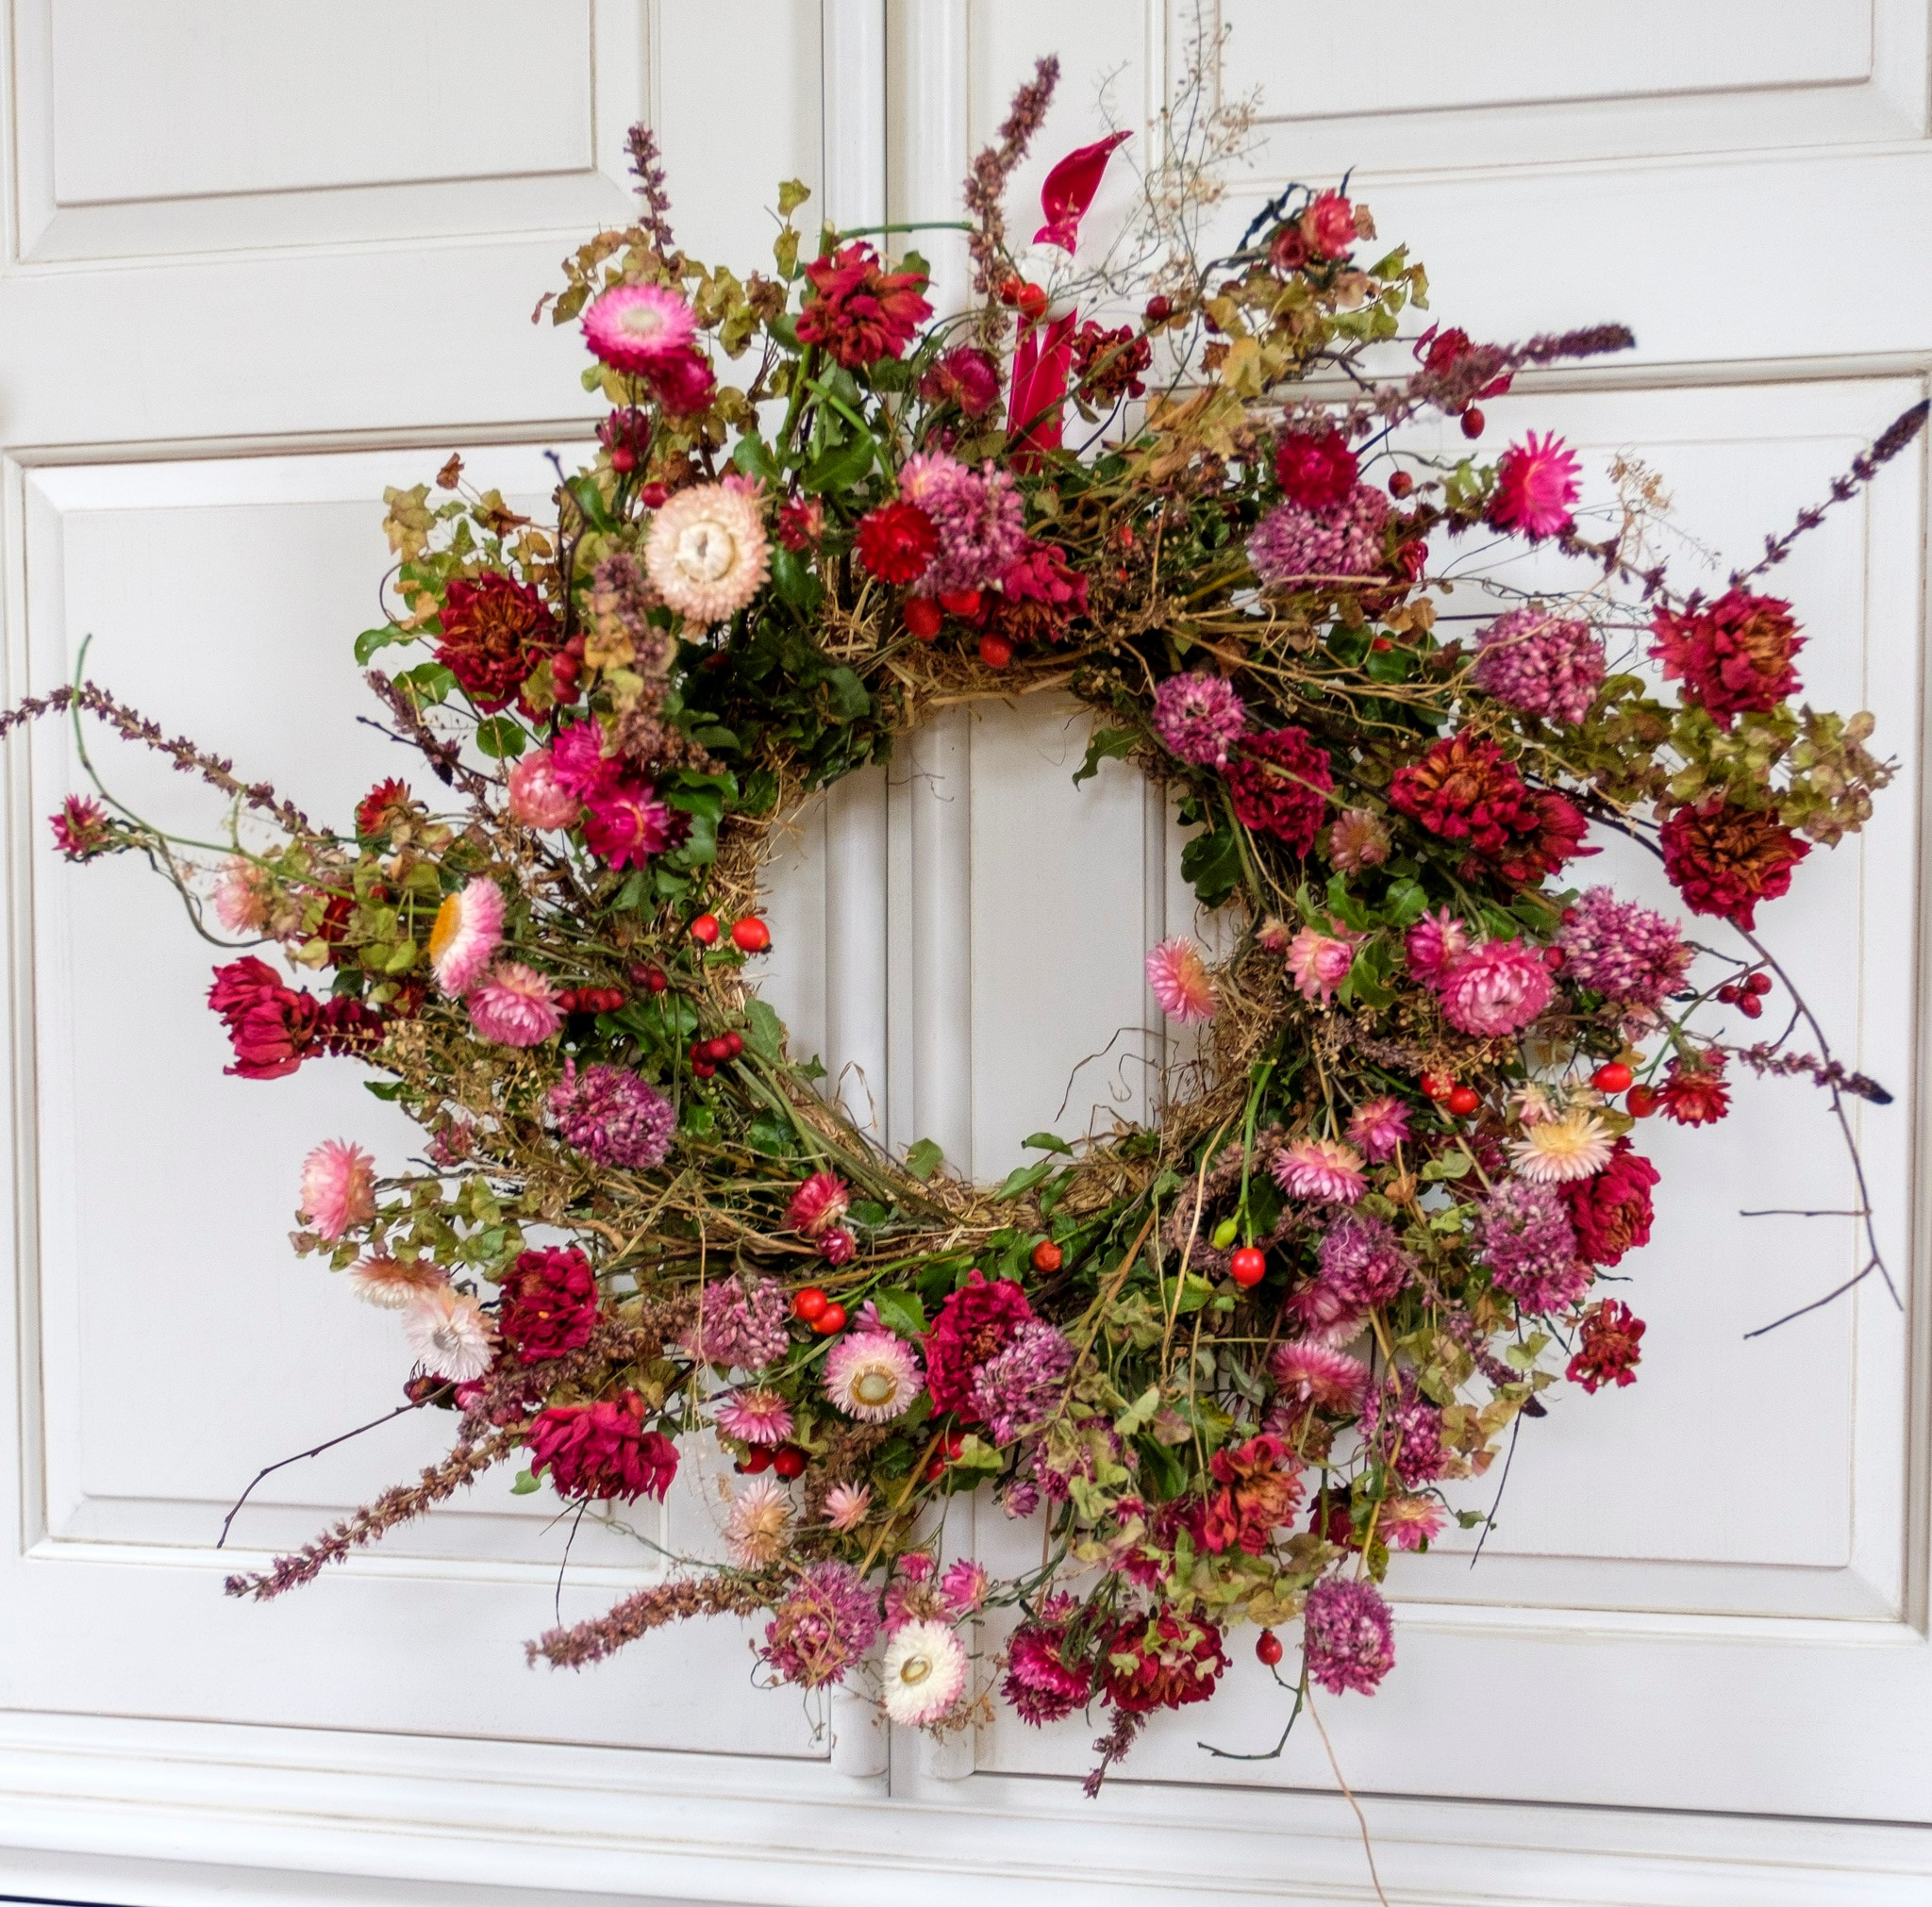 A sustainable autumn wreath made with locally grown dried flowers by Fierce Blooms Cheshire.